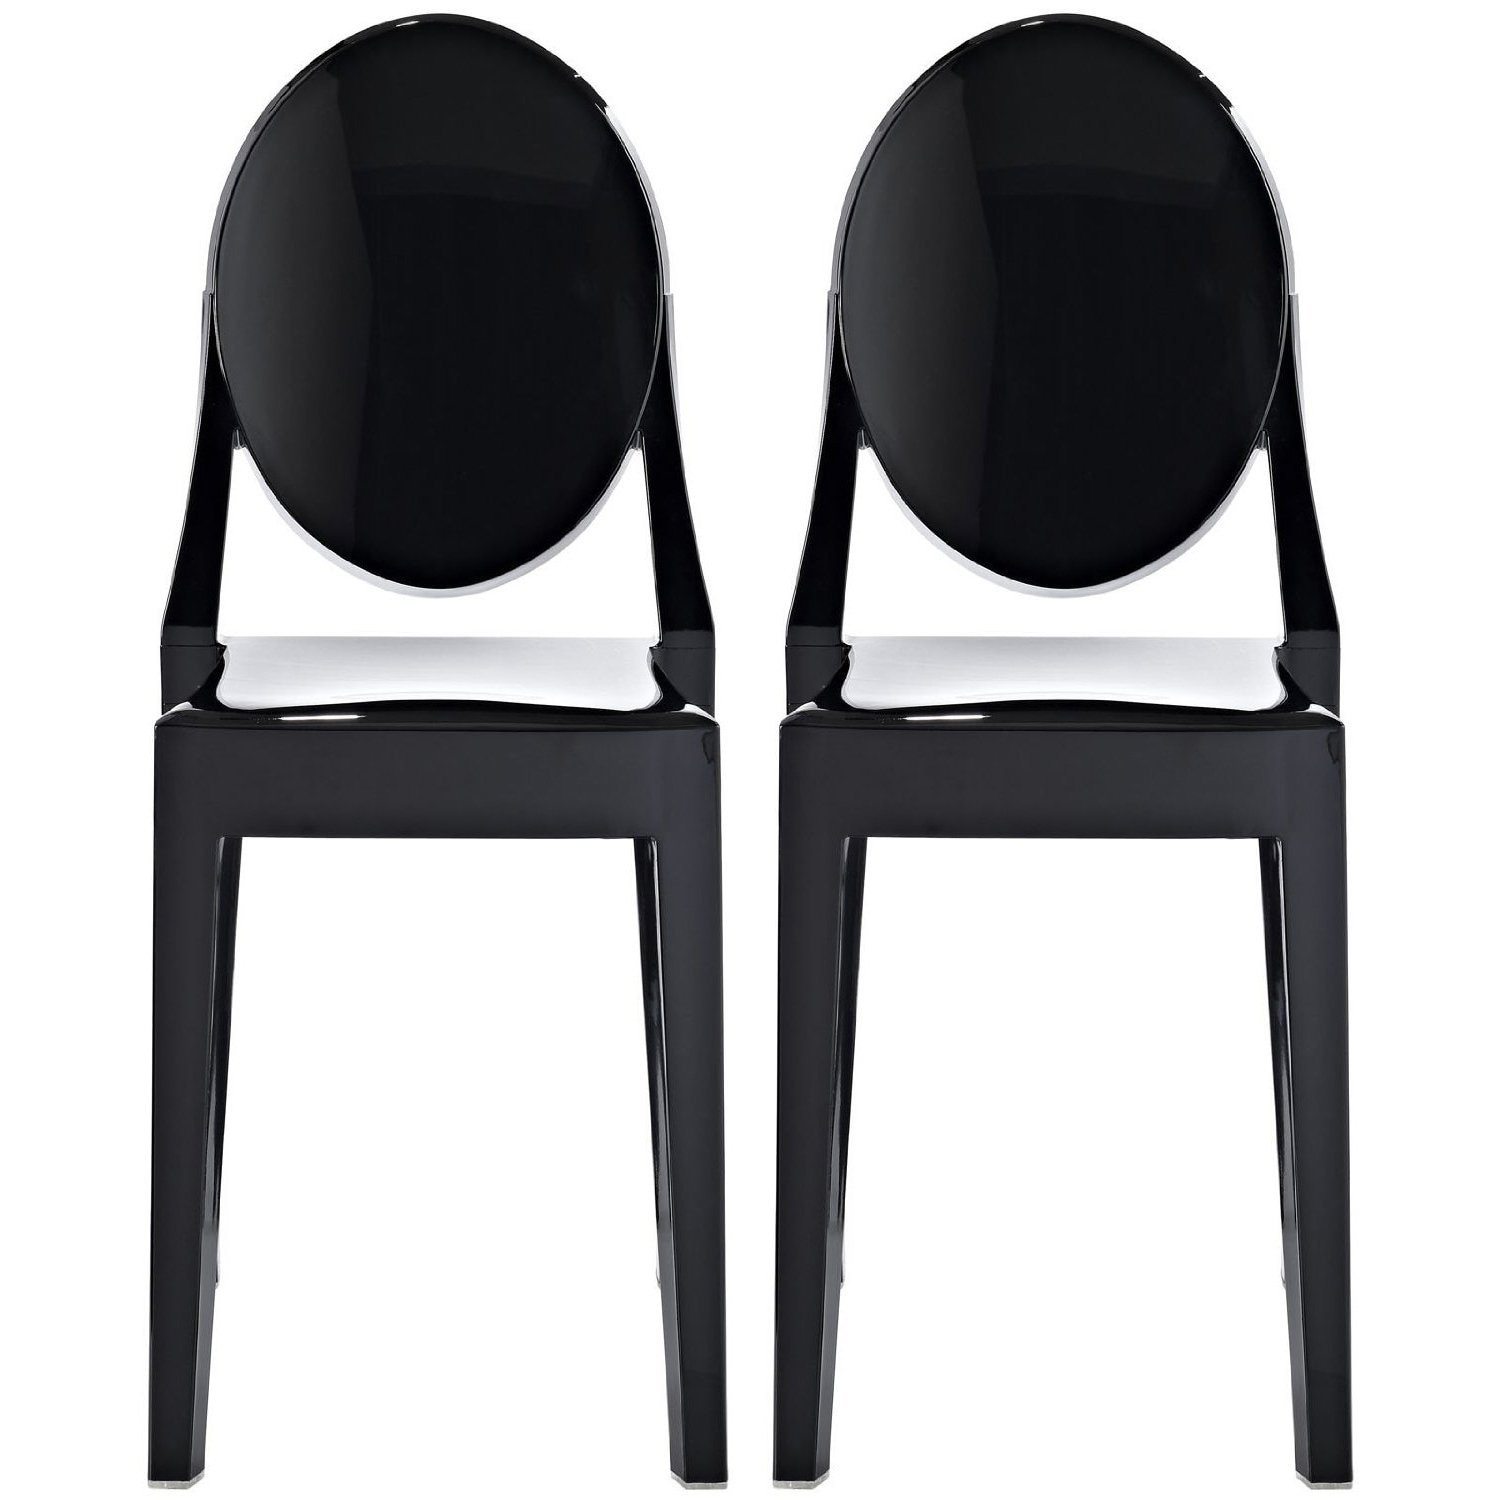 2xhome Set Of 2 Mid Century Contemporary Modern Black Dining Chair Plastic Acrylic Stackable Vintage Kitchen Work